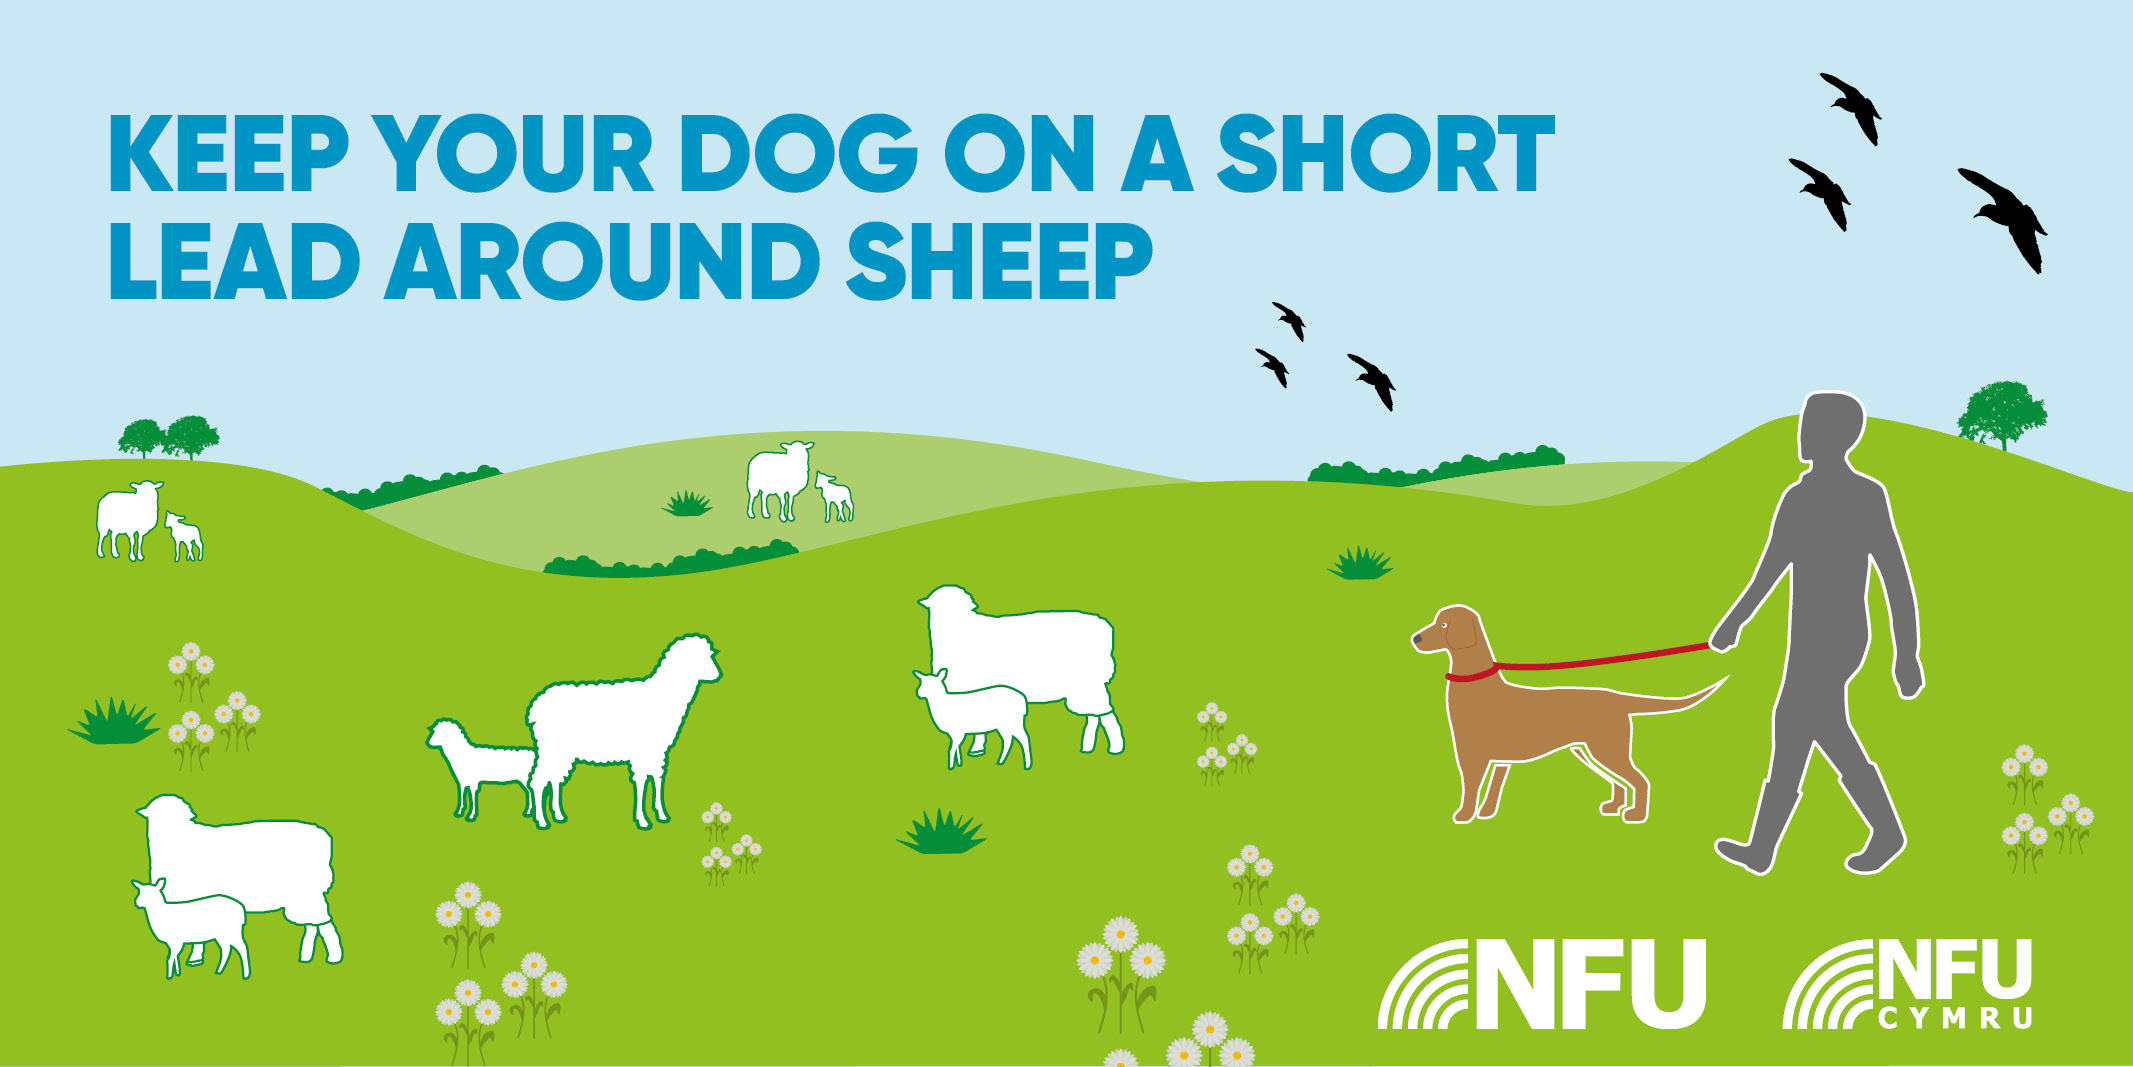 keep your dog on a short lead